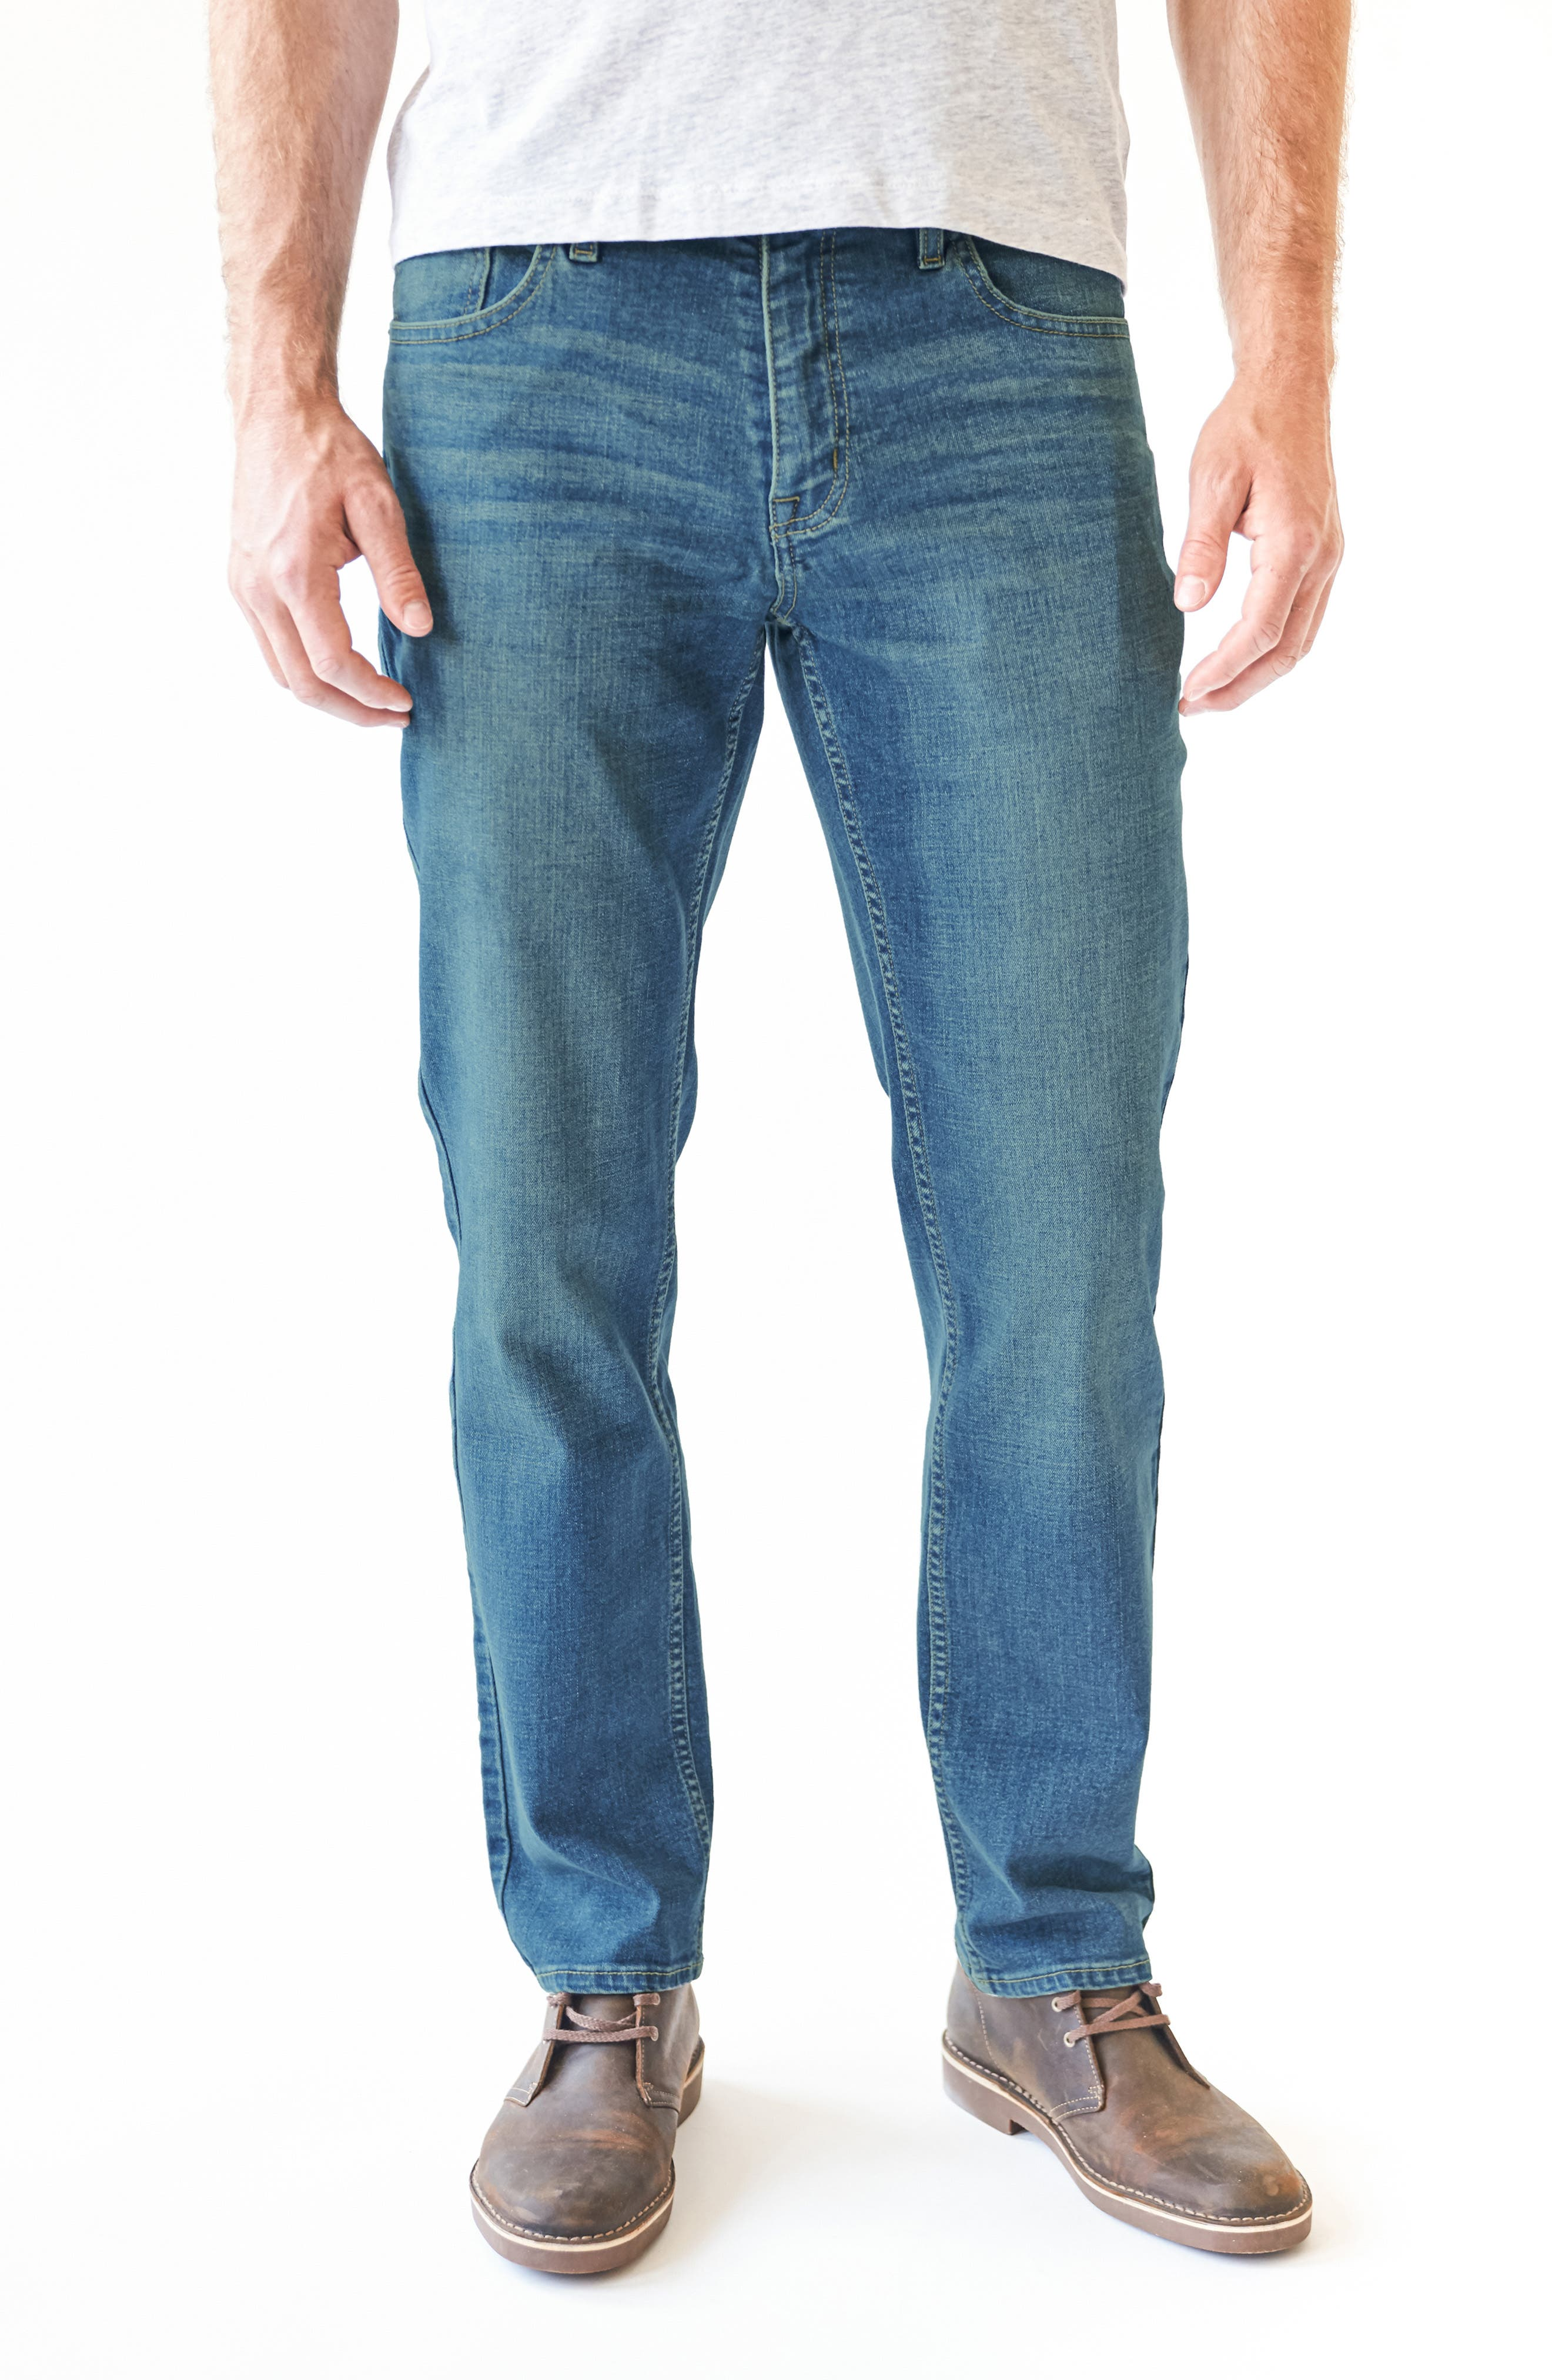 Athletic Fit Performance Jeans